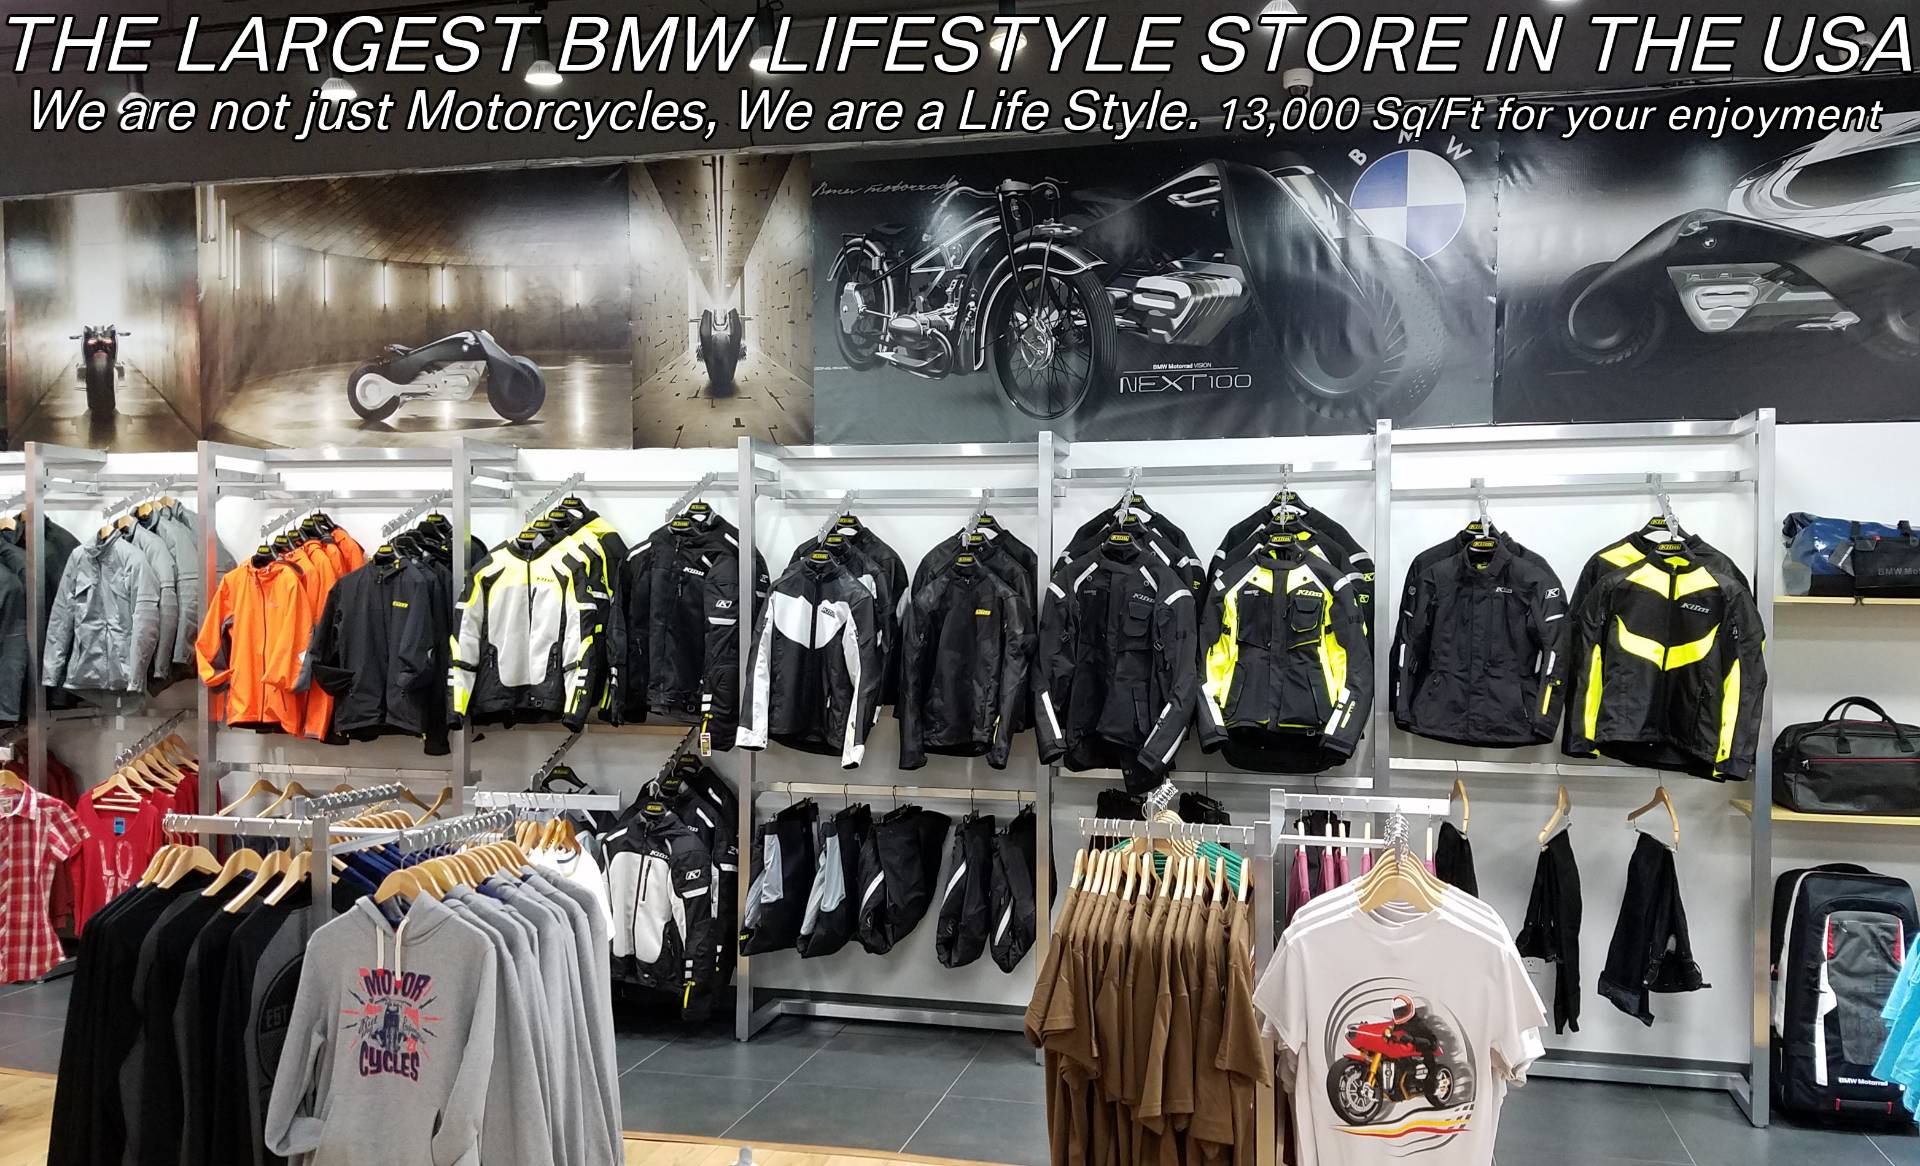 New 2019 BMW C 400 X for sale, BMW C 400X for sale, BMW Scooter, new BMW Scooter, C400X, BMW Motorcycles of Miami, Motorcycles of Miami, Motorcycles Miami, New Motorcycles, Used Motorcycles, pre-owned. #BMWMotorcyclesOfMiami #MotorcyclesOfMiami #MotorcyclesMiami - Photo 35